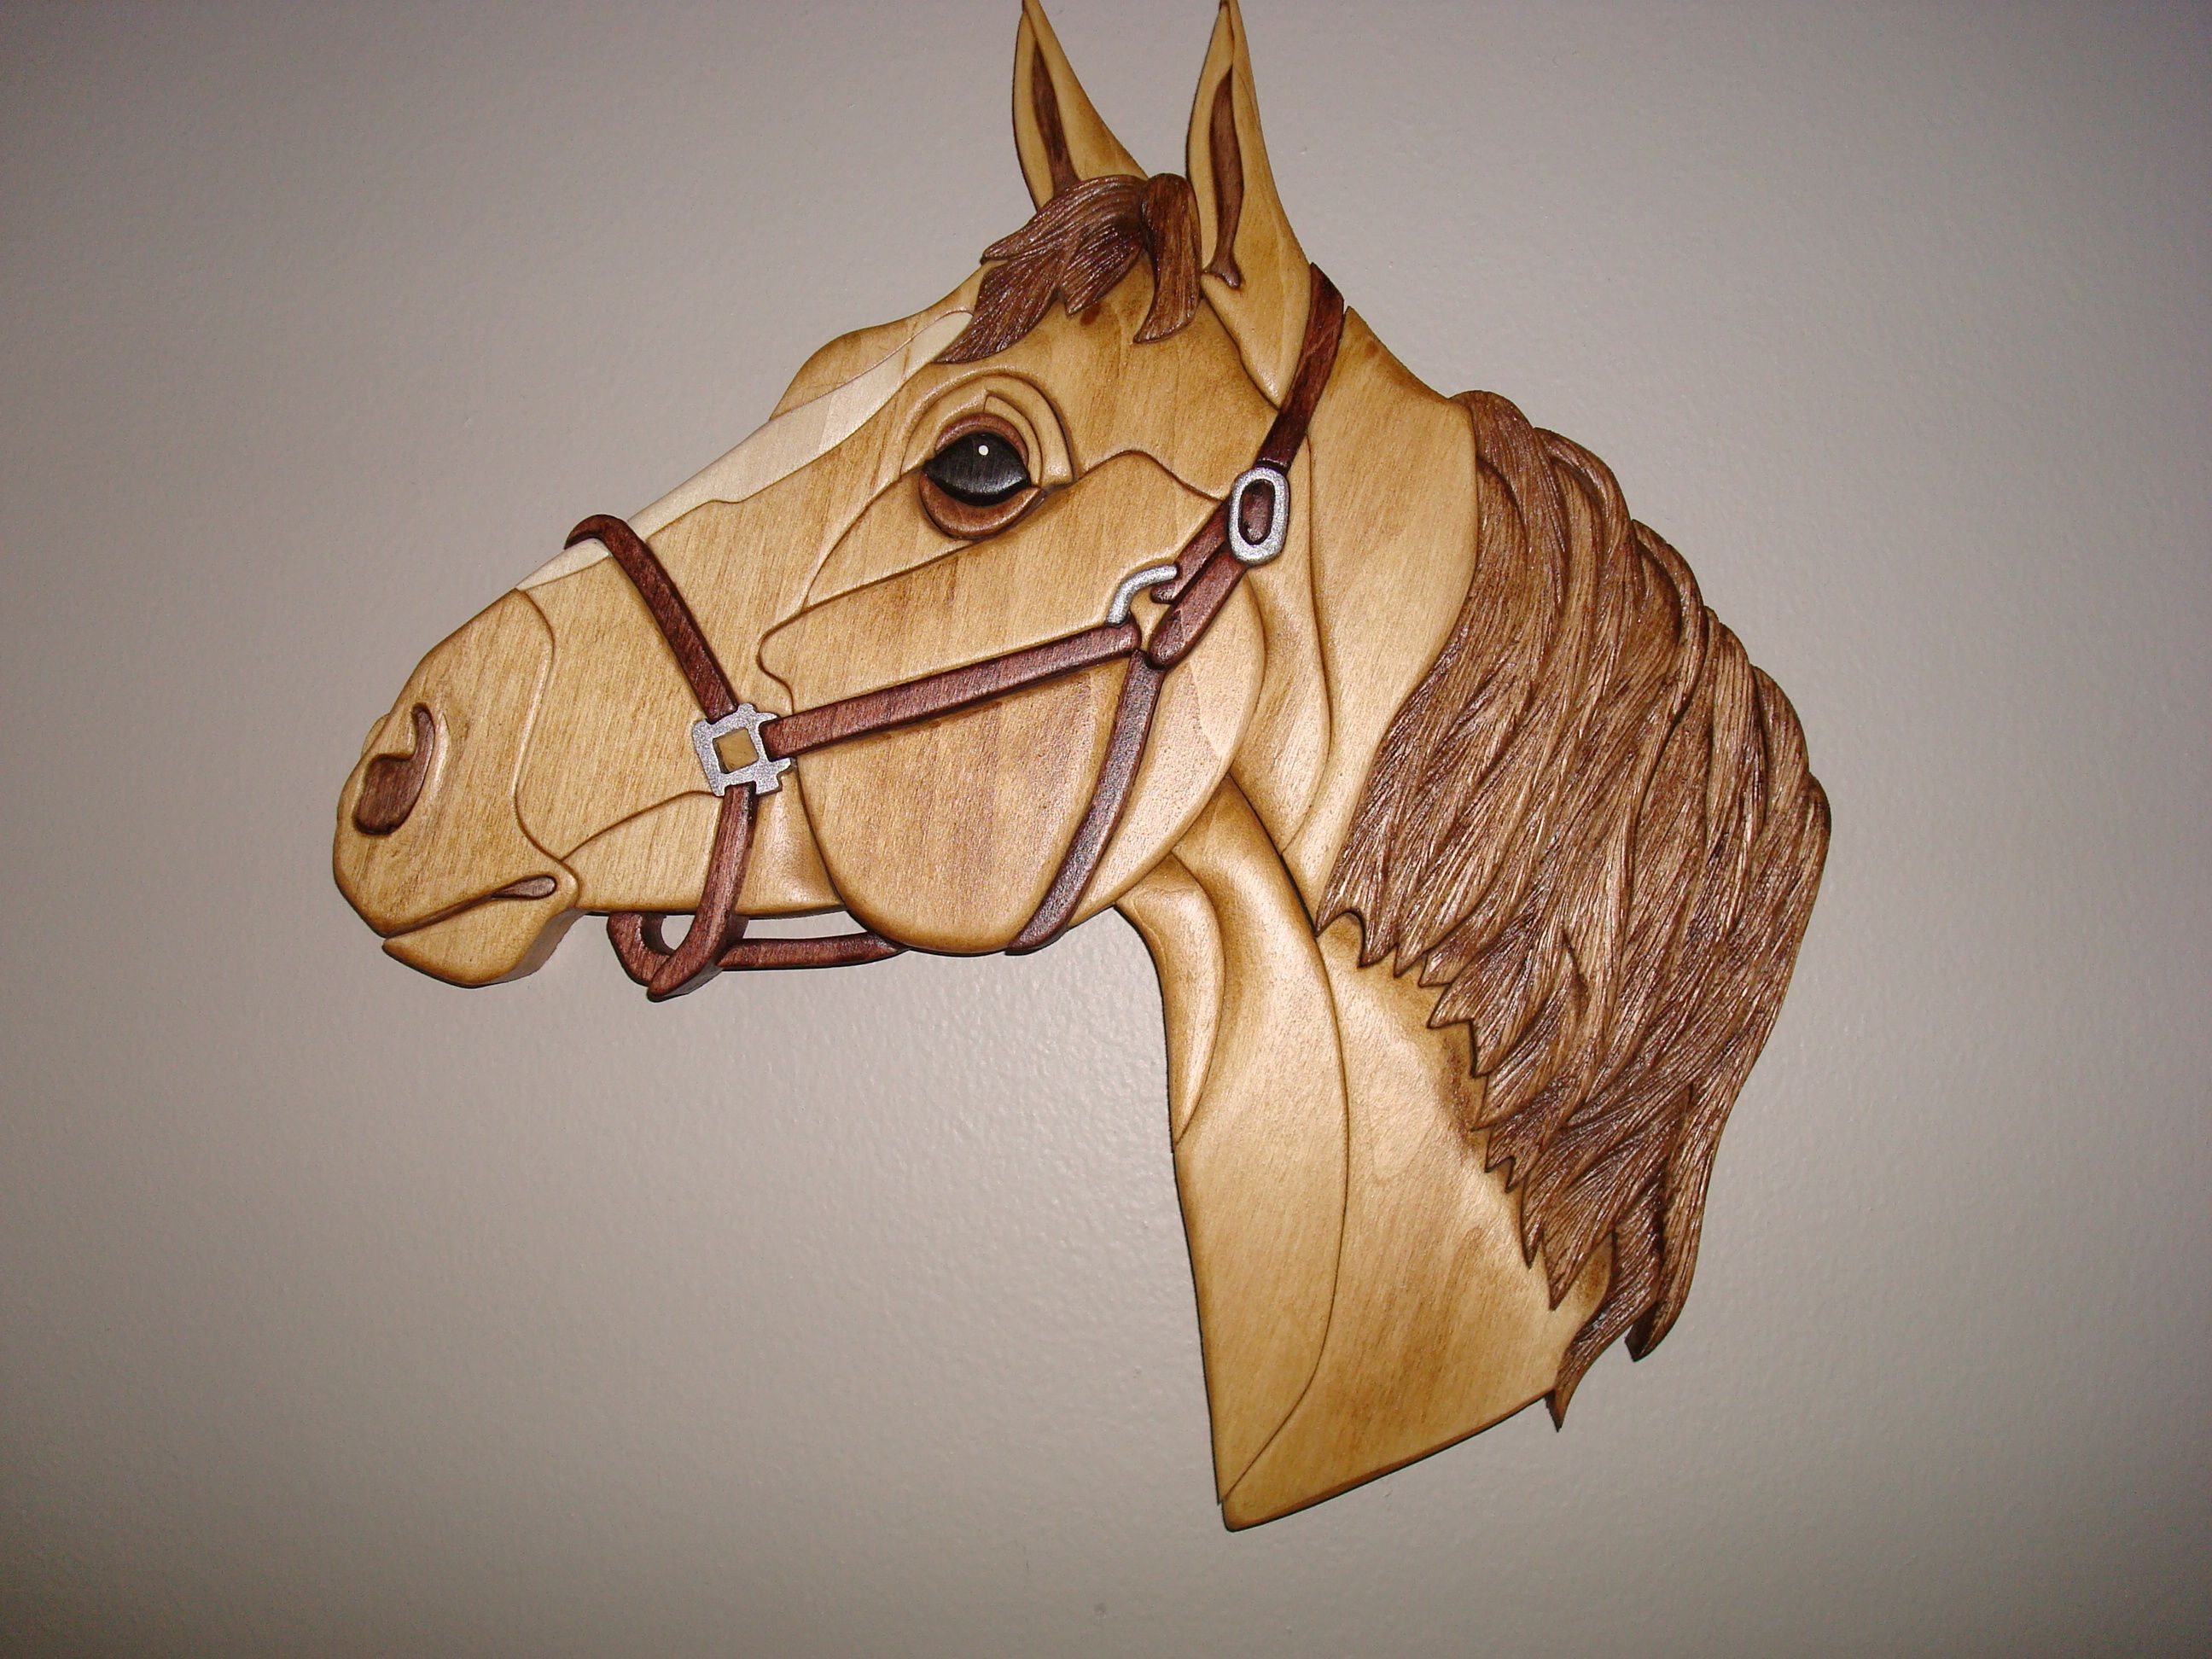 Wooden horse patterns - Horse Head Intarsia